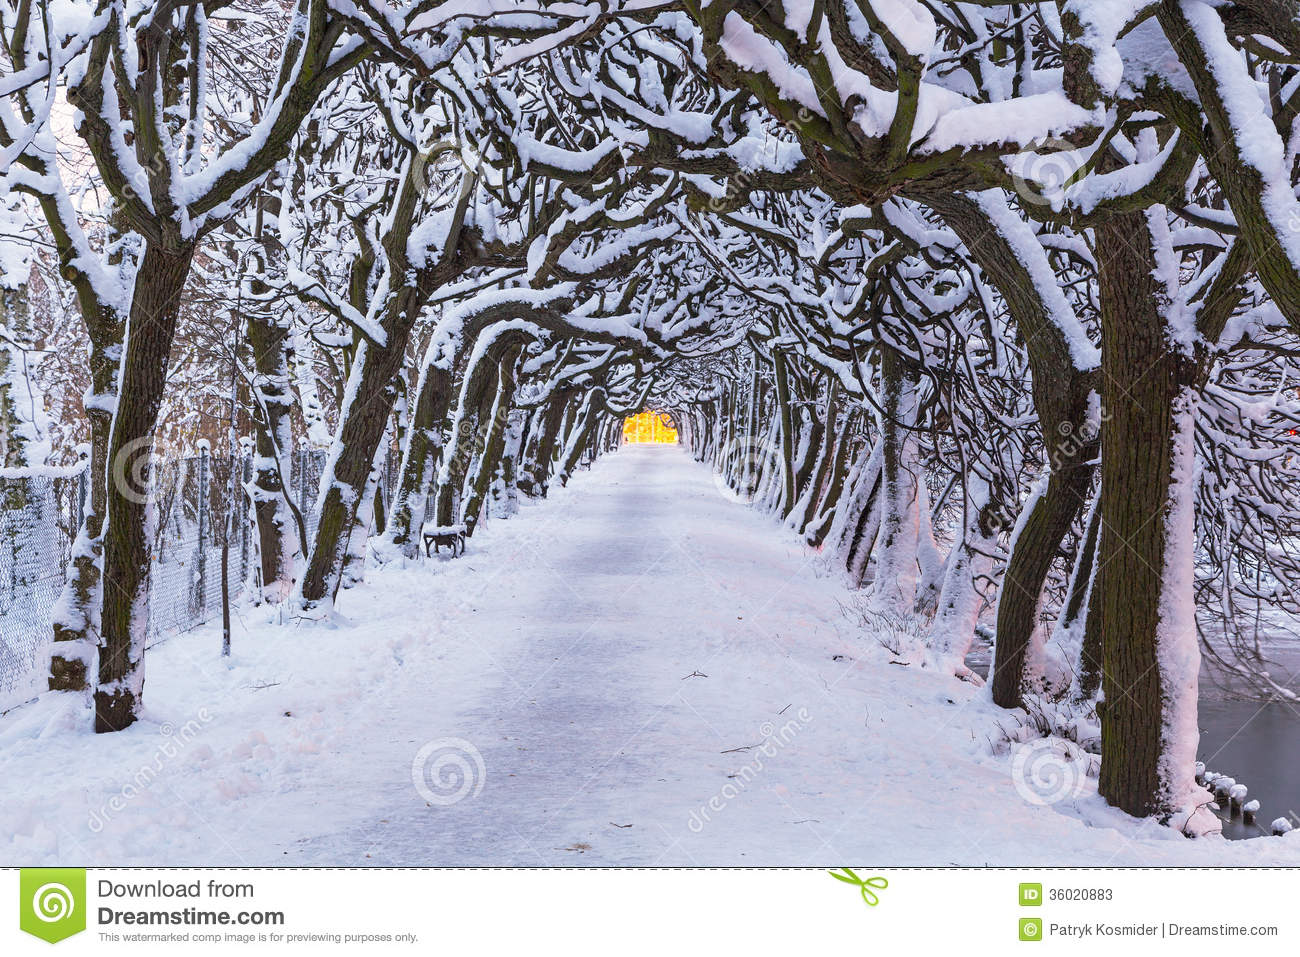 Winter Scenery Of Snowy Park In Gdansk Royalty Free Stock Photo.